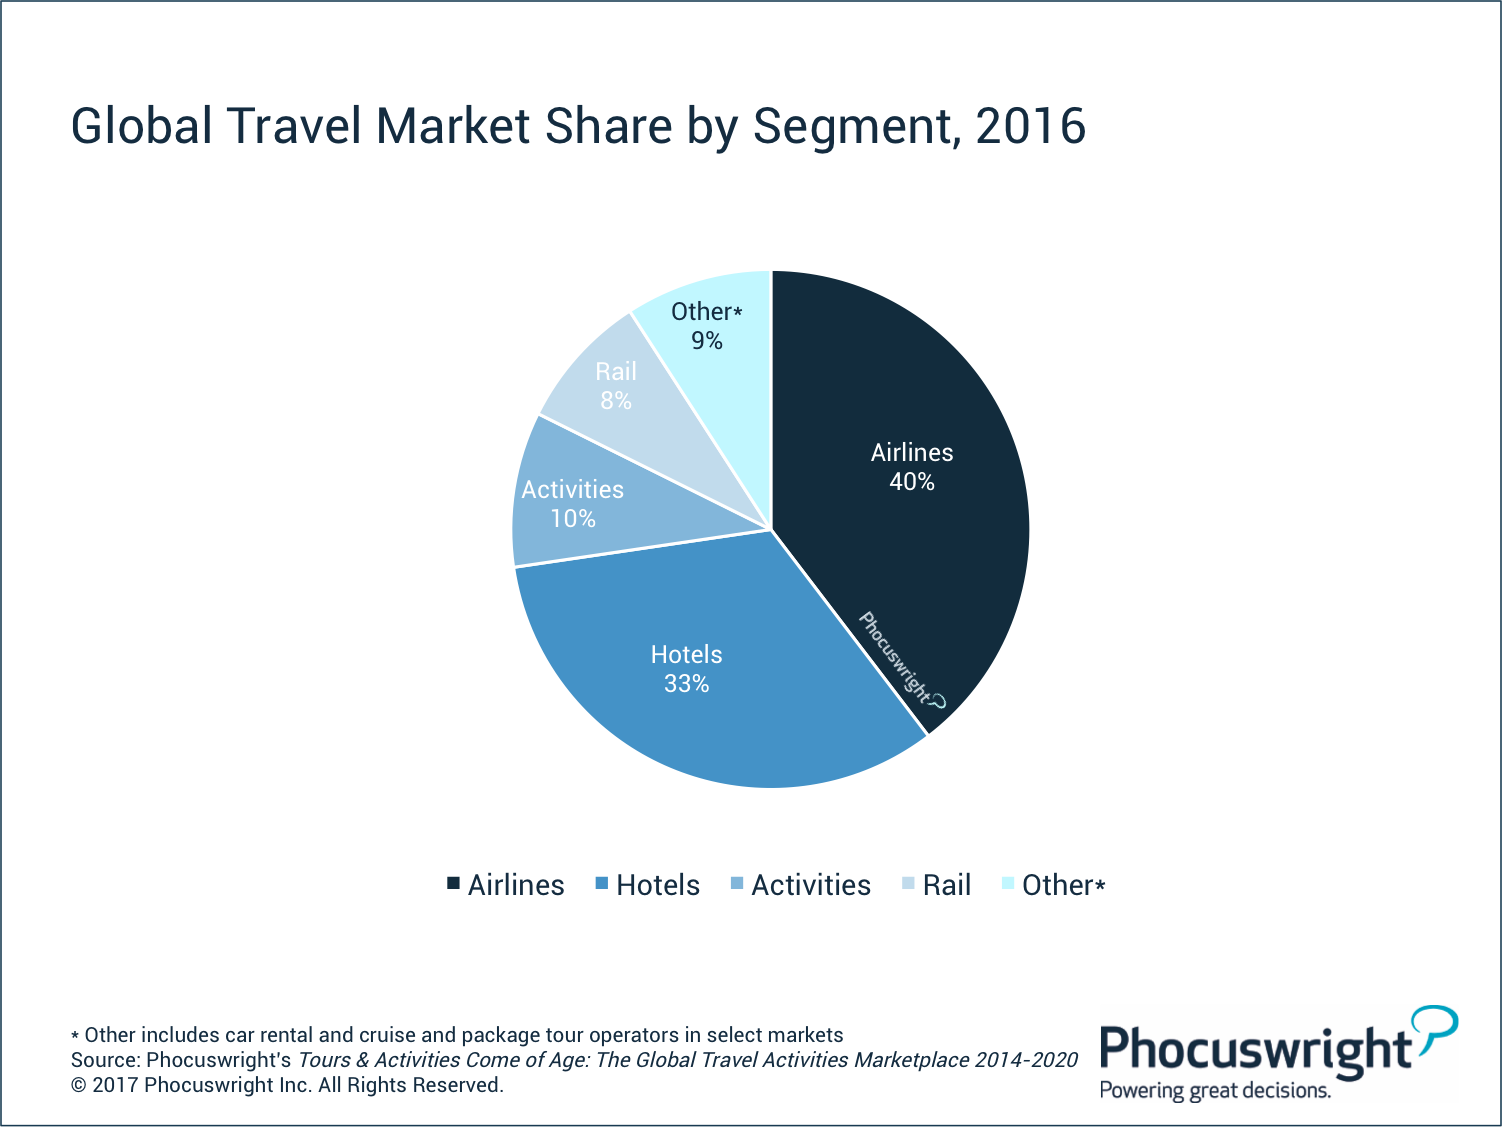 Global Travel Market Share by Segment, 2016 Phocuswright